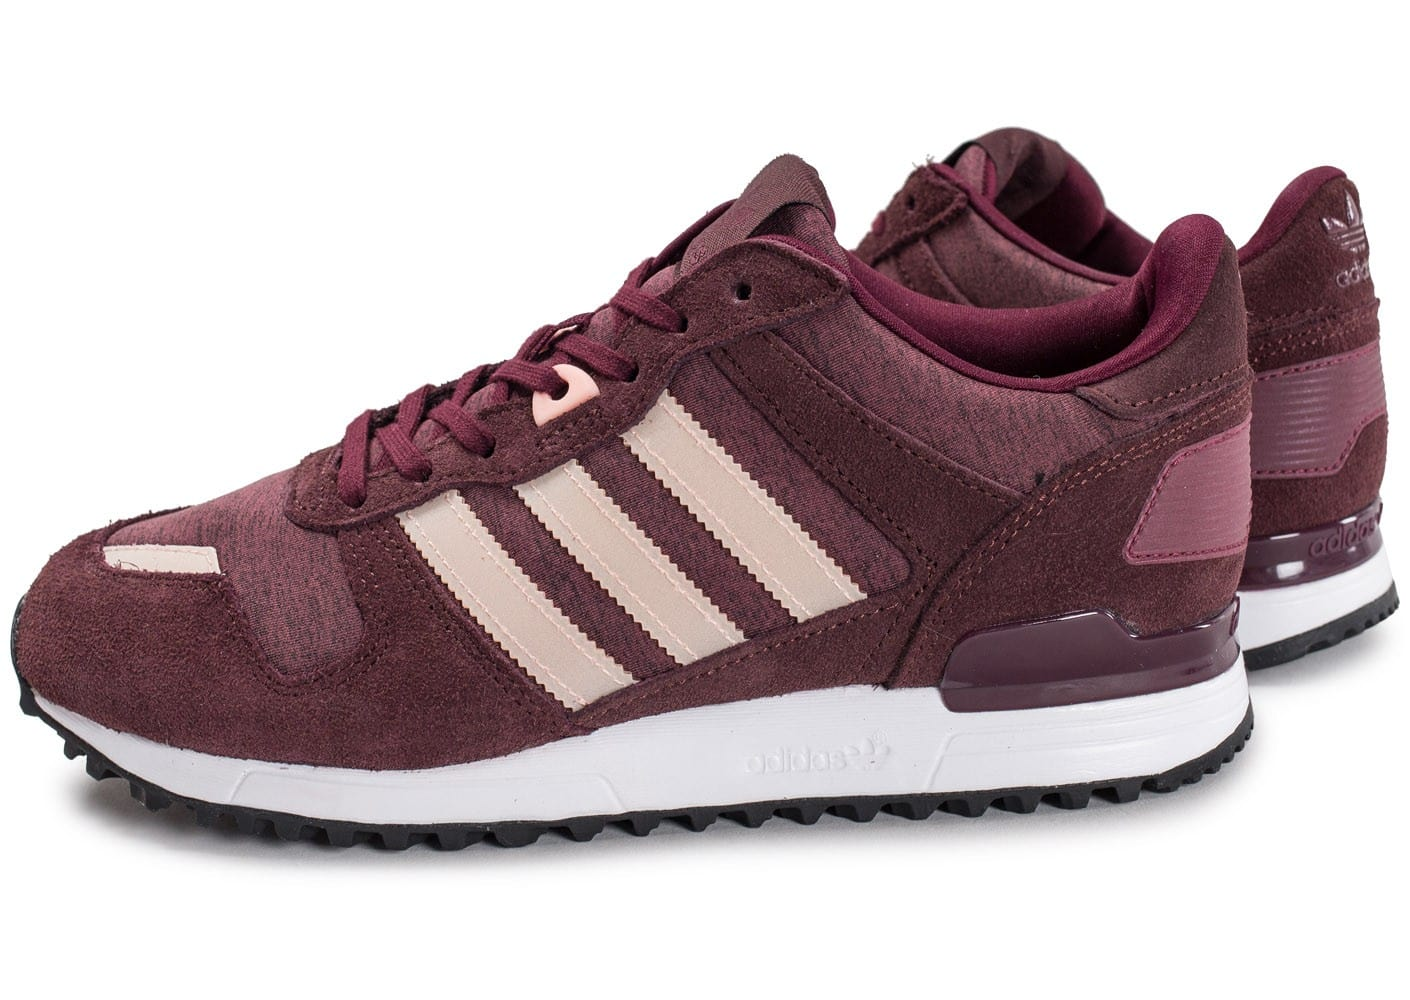 adidas chaussure zx 700